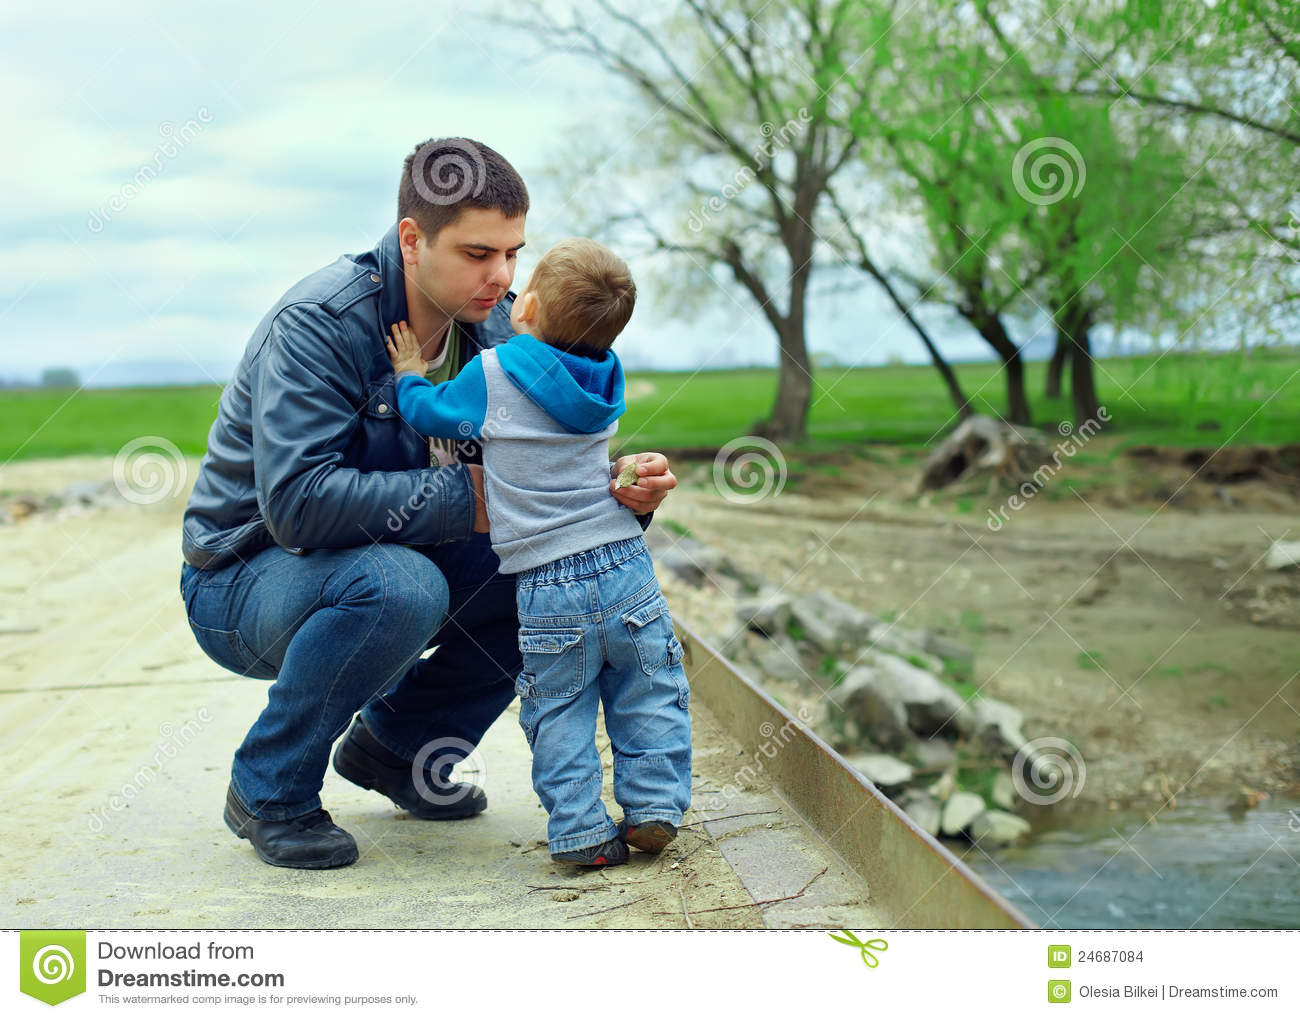 father and son relationships The relationship between a father and his son can be quite difficult to develop  and maintain fathers and sons do not always relate to one another, especially if .